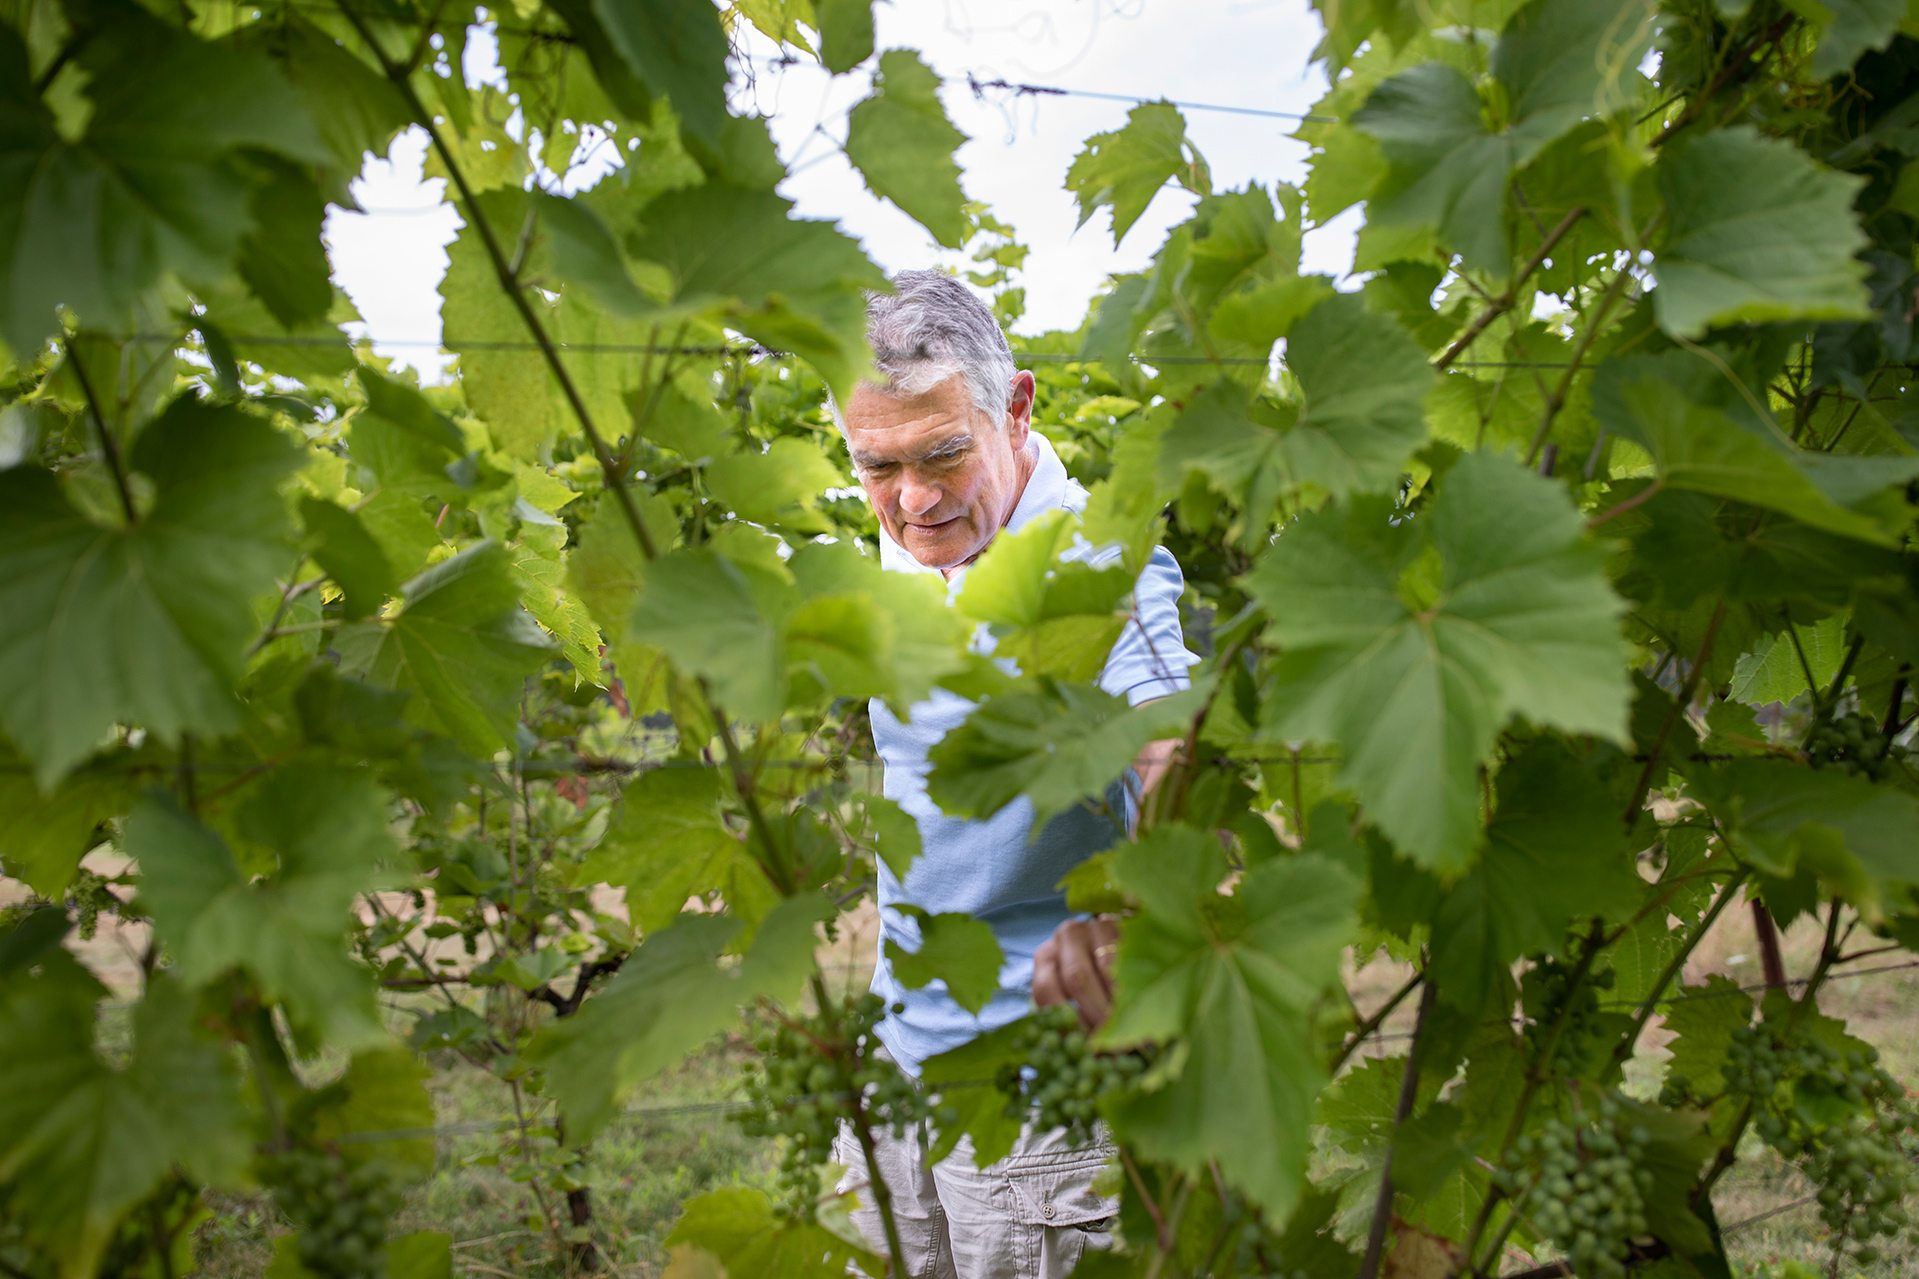 Just up the coast from Ocean Park, Bill Holt poses in his vineyard, located behind his year-round home in Cape Elizabeth. (Phyllis Graber Jensen/Bates College)